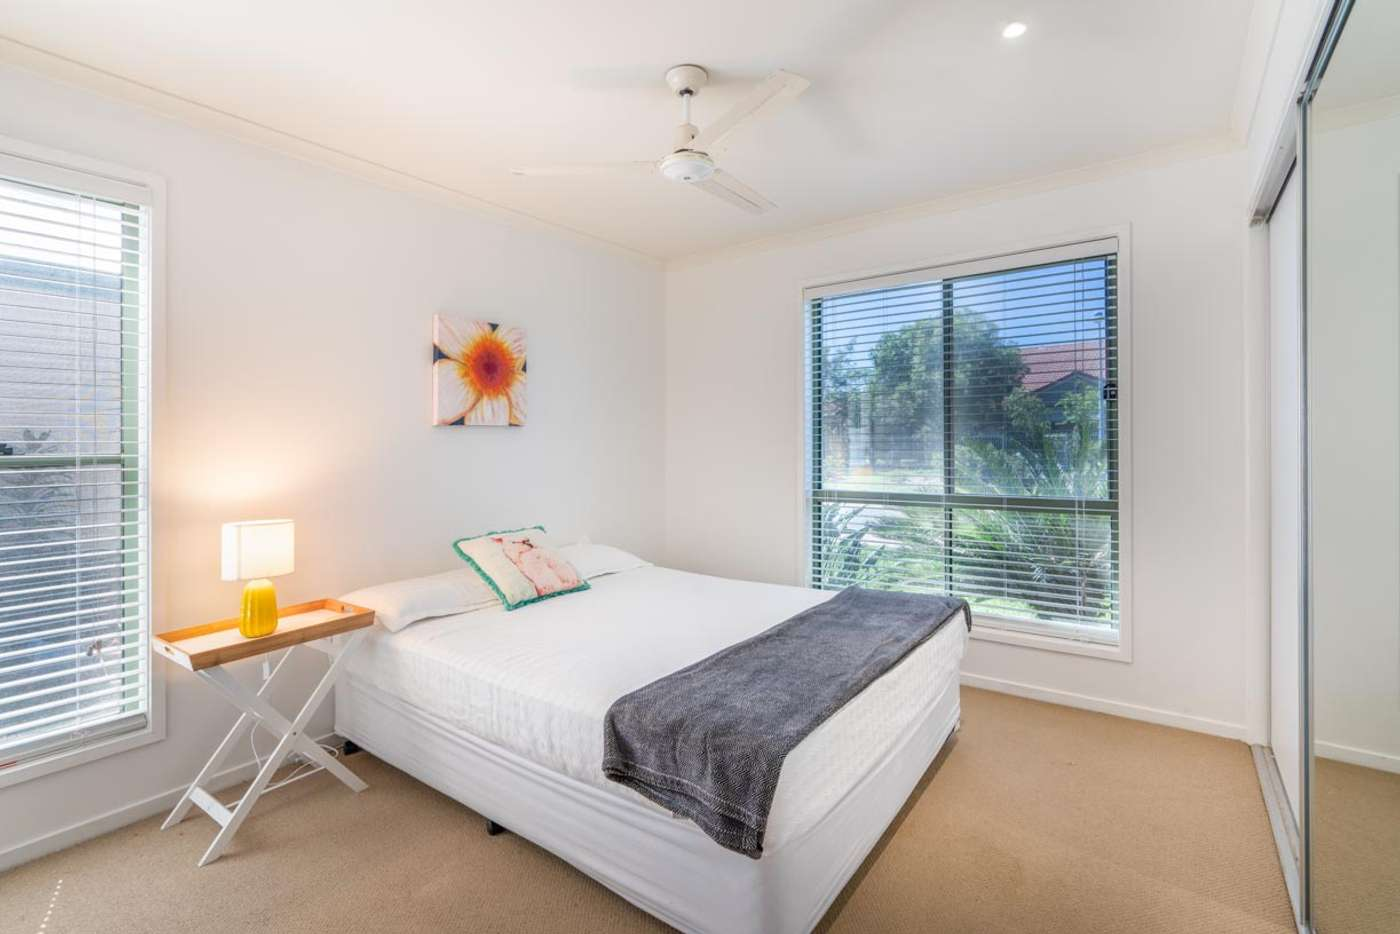 Fifth view of Homely house listing, 4 Yarran Road, Peregian Springs QLD 4573